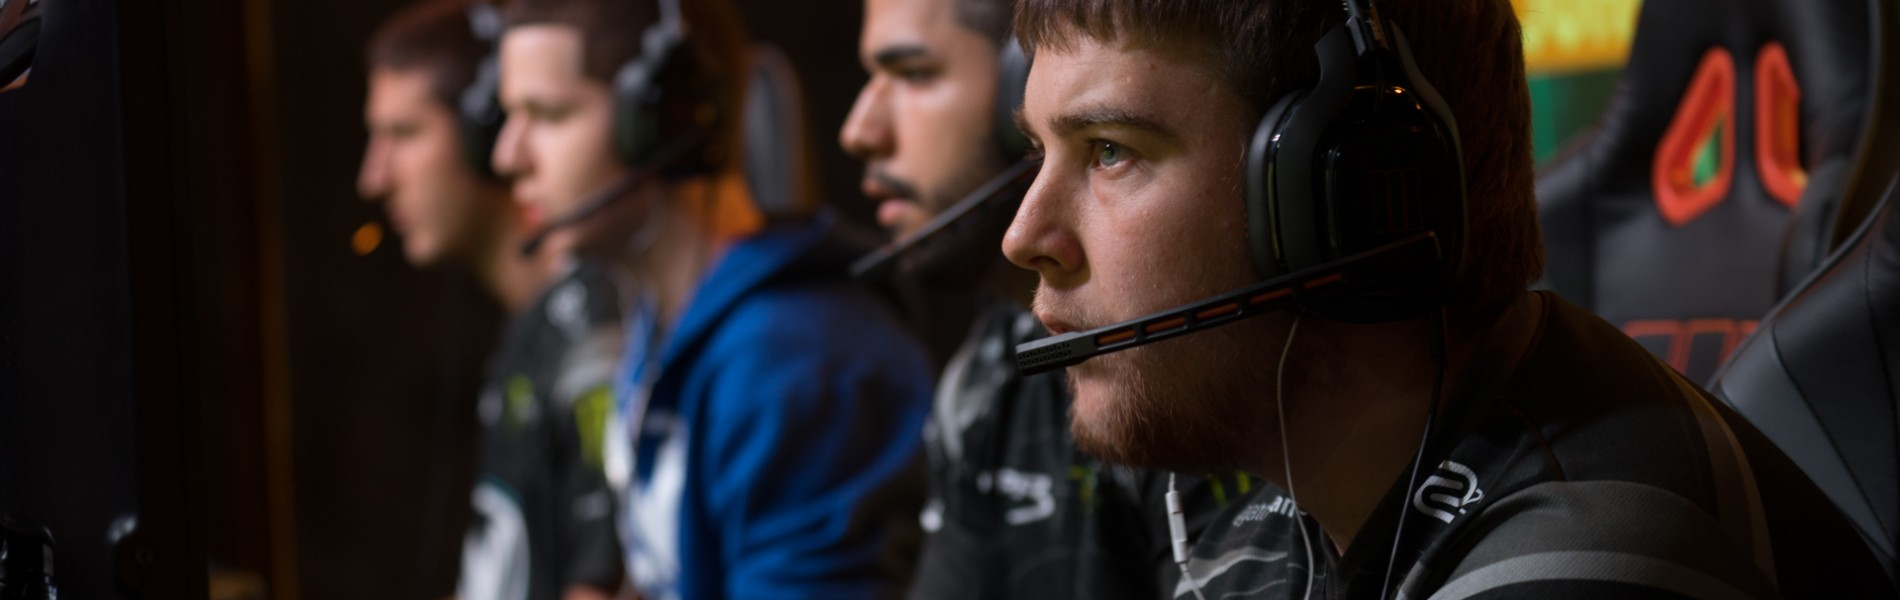 Call of Duty World League Stage 2 Finals, featuring Team EnVyUs